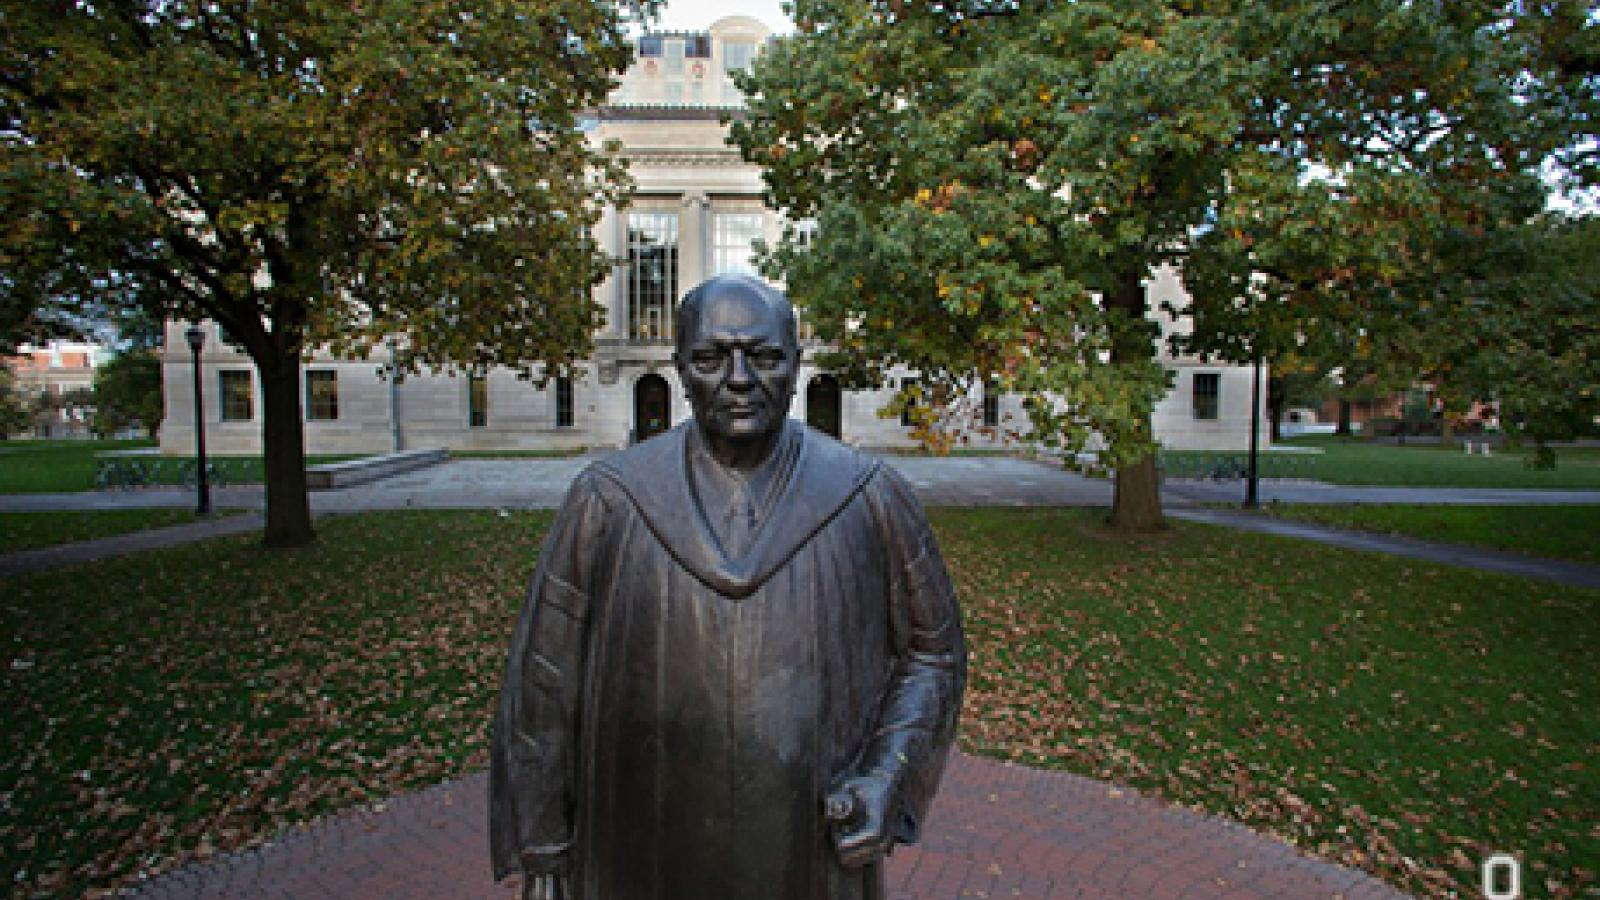 Statue in Front of Thompson Library on Oval Mall